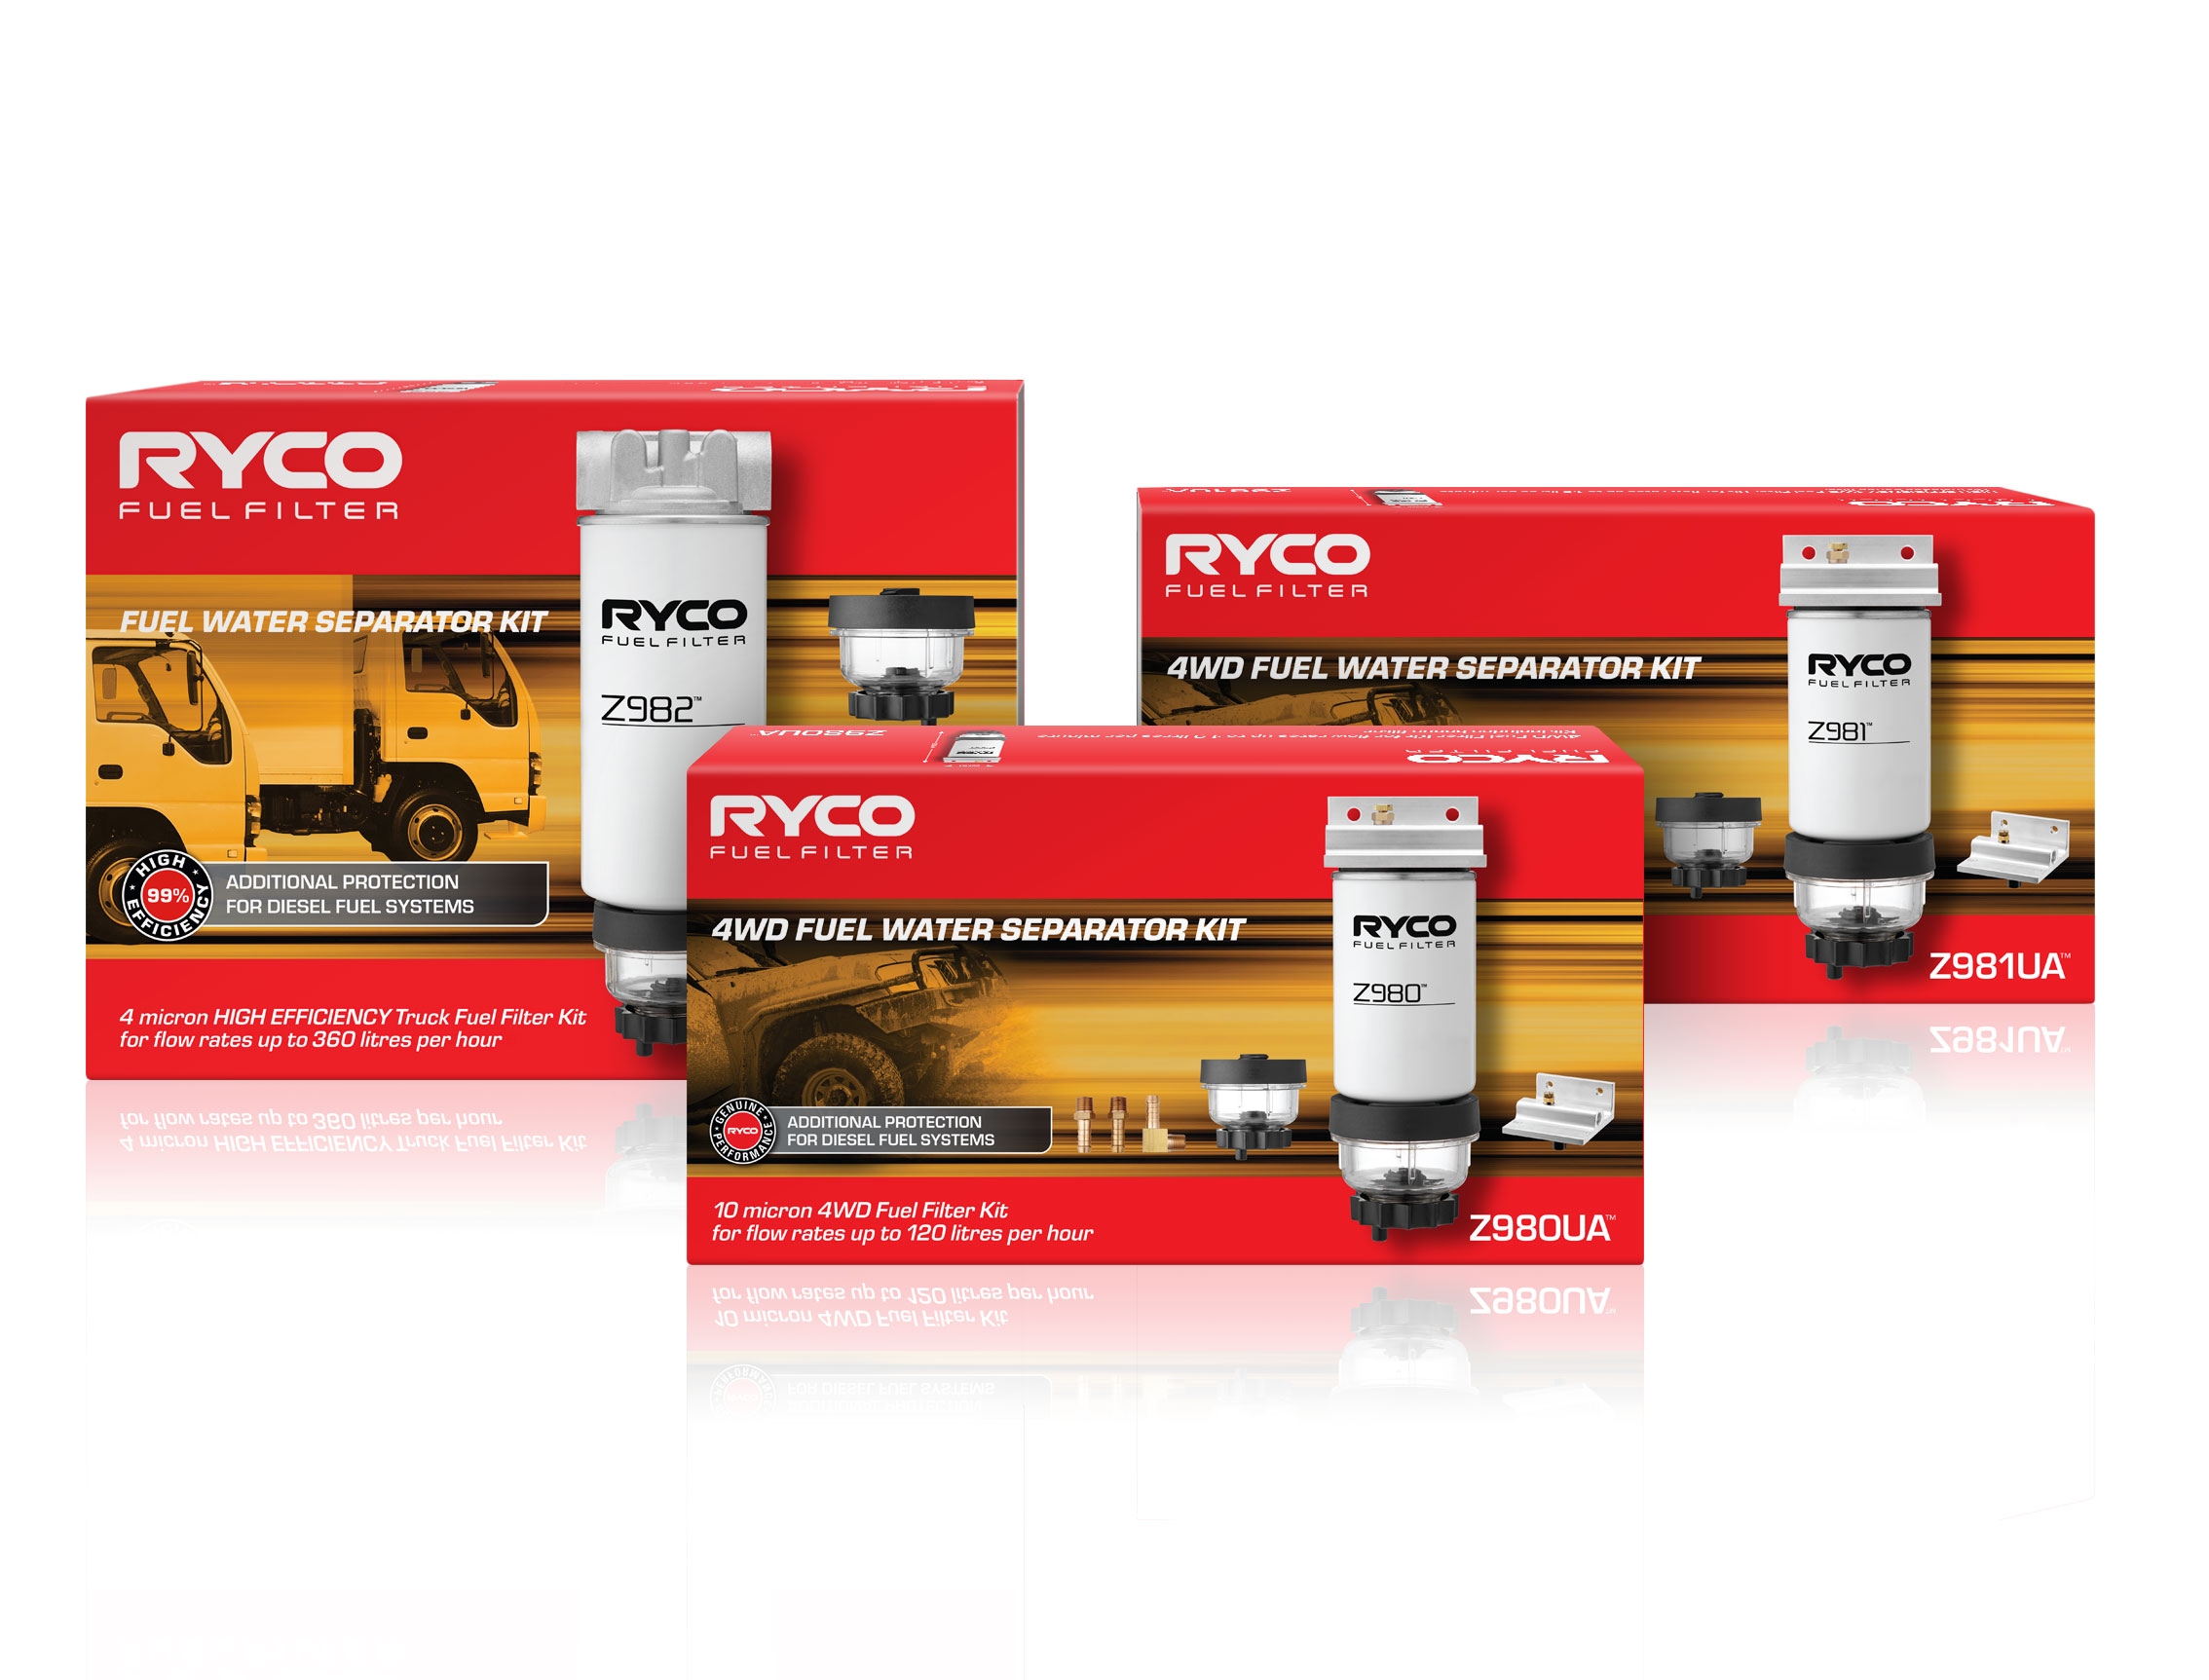 Ryco Fuel Water Separator Kit 4wd Z980ua For Flow Rates Up To 120l Text Filter Protects Common Rail Diesel System Injectors Becoming Blocked Or Damaged